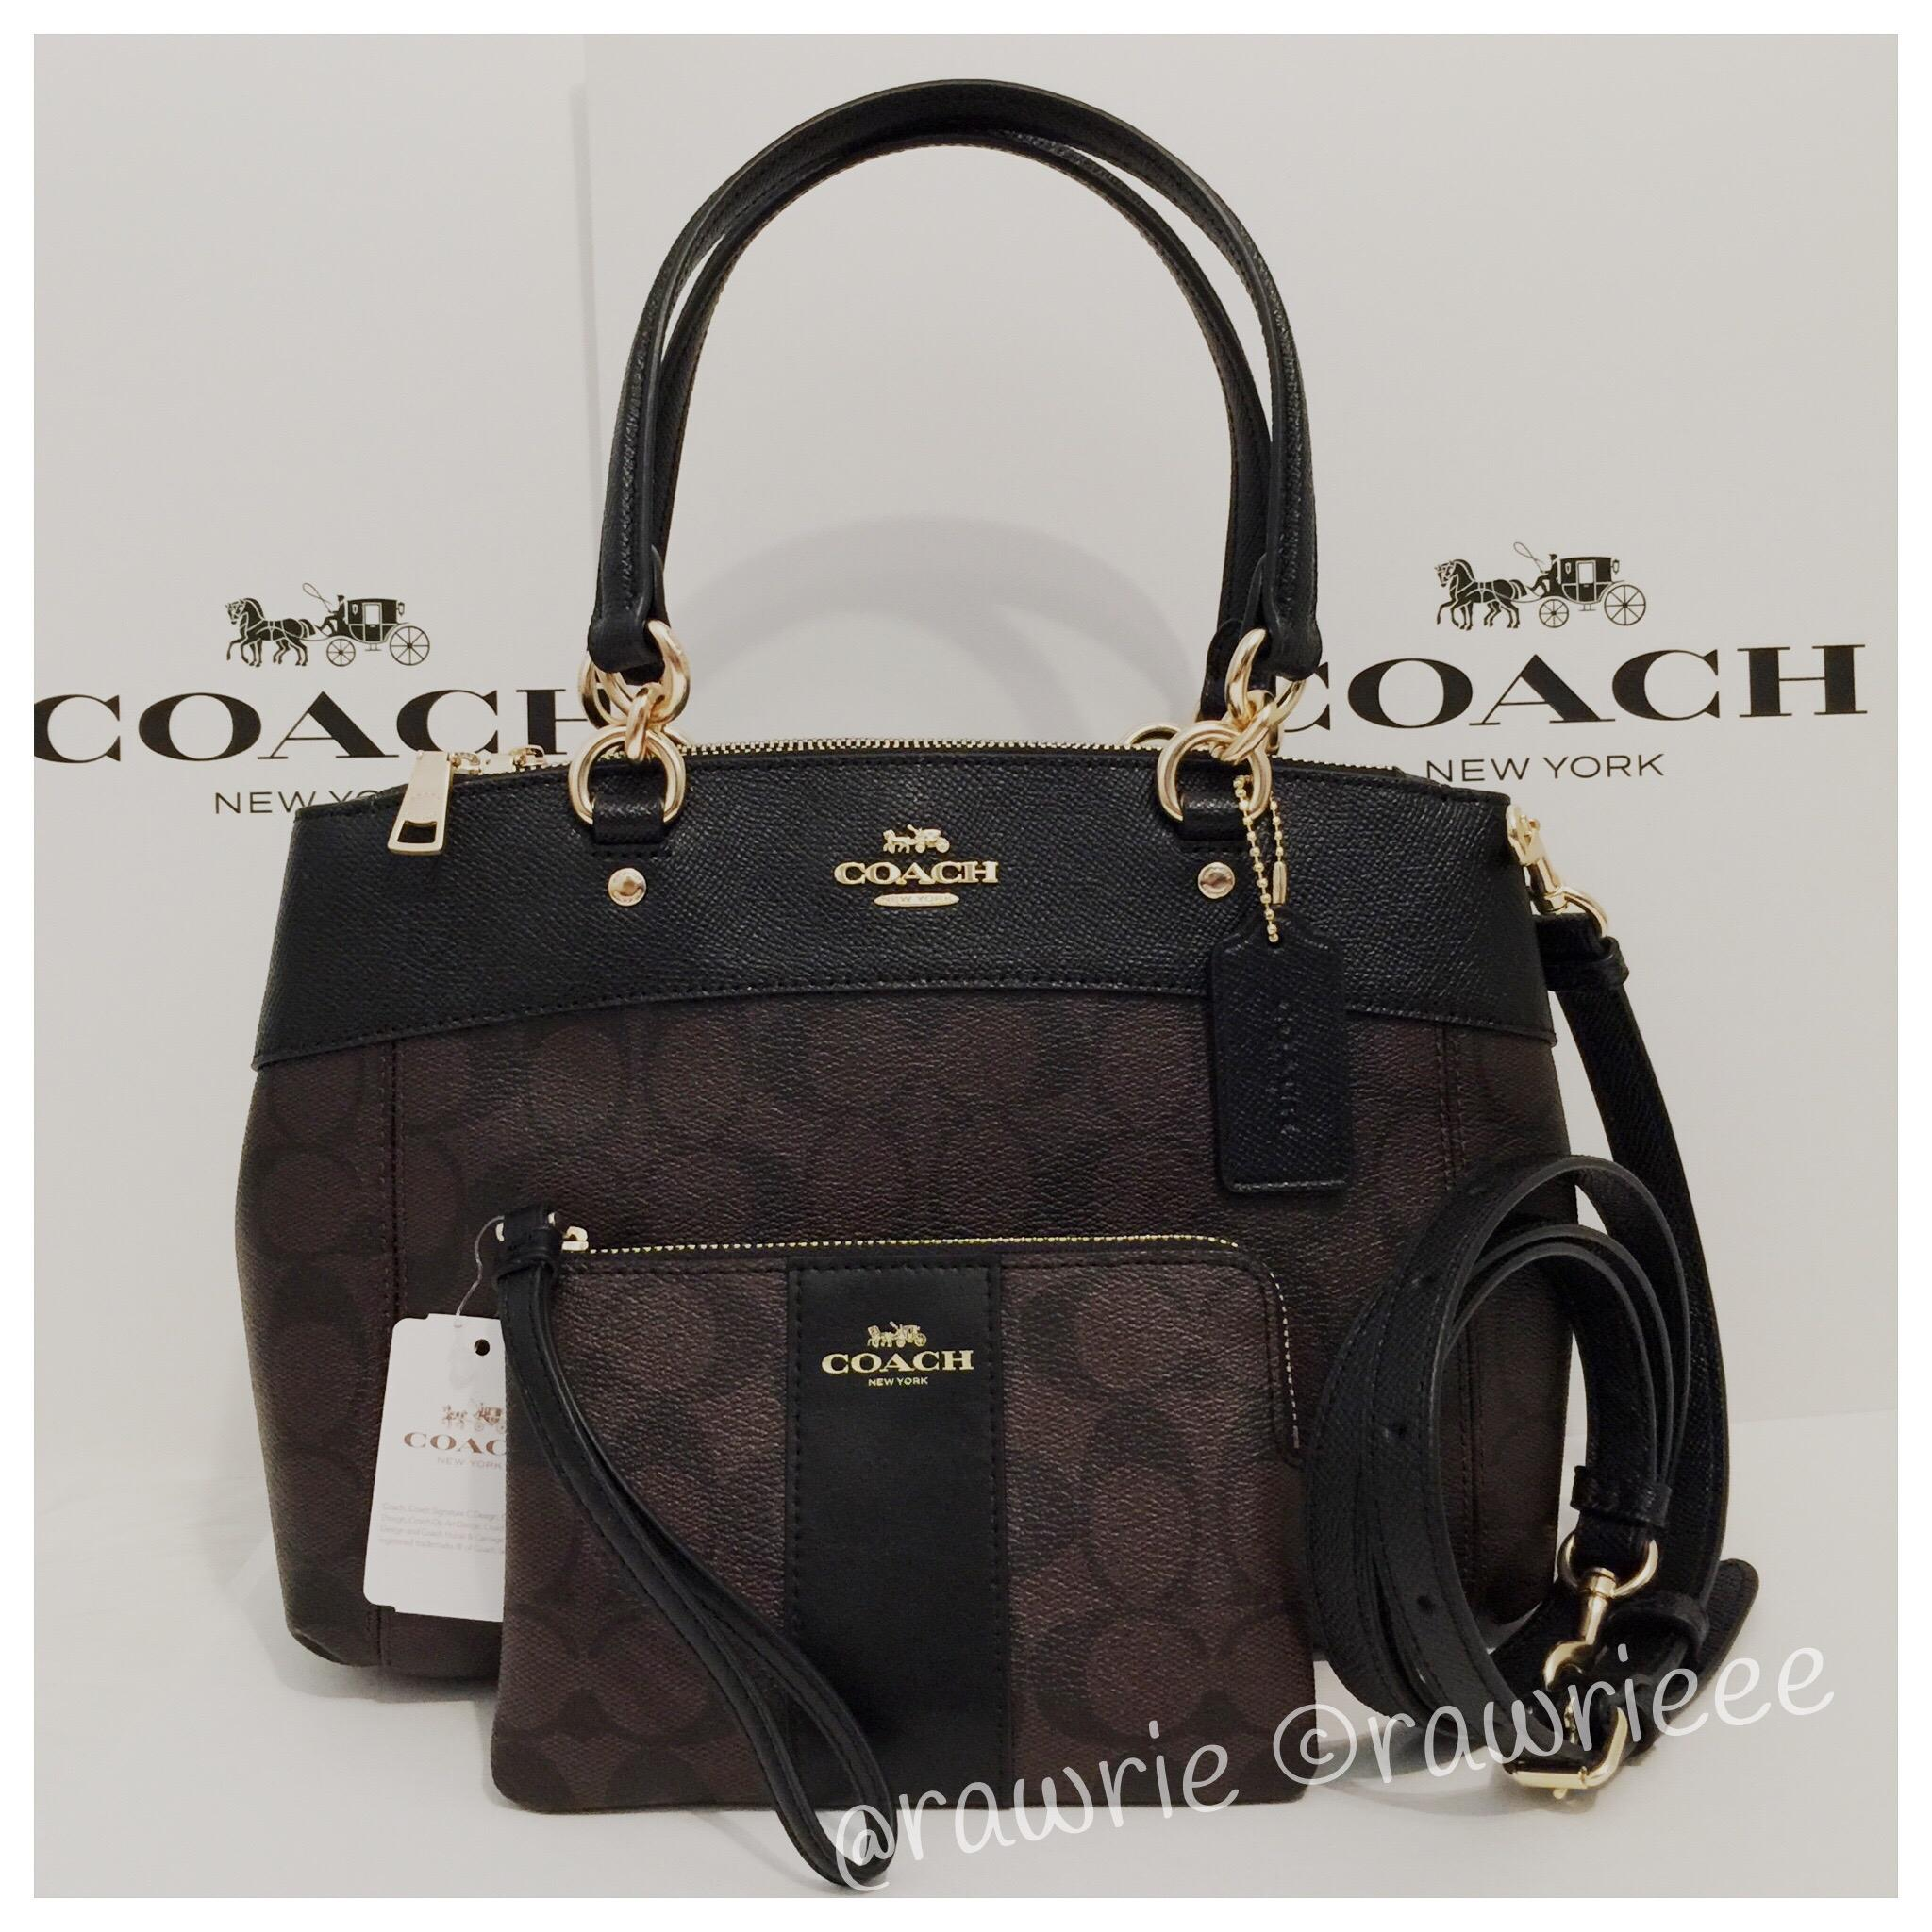 9af0bce108 ... spain coach monogram set matching set gift set signature set cross body  bag 3bef9 643bc ...